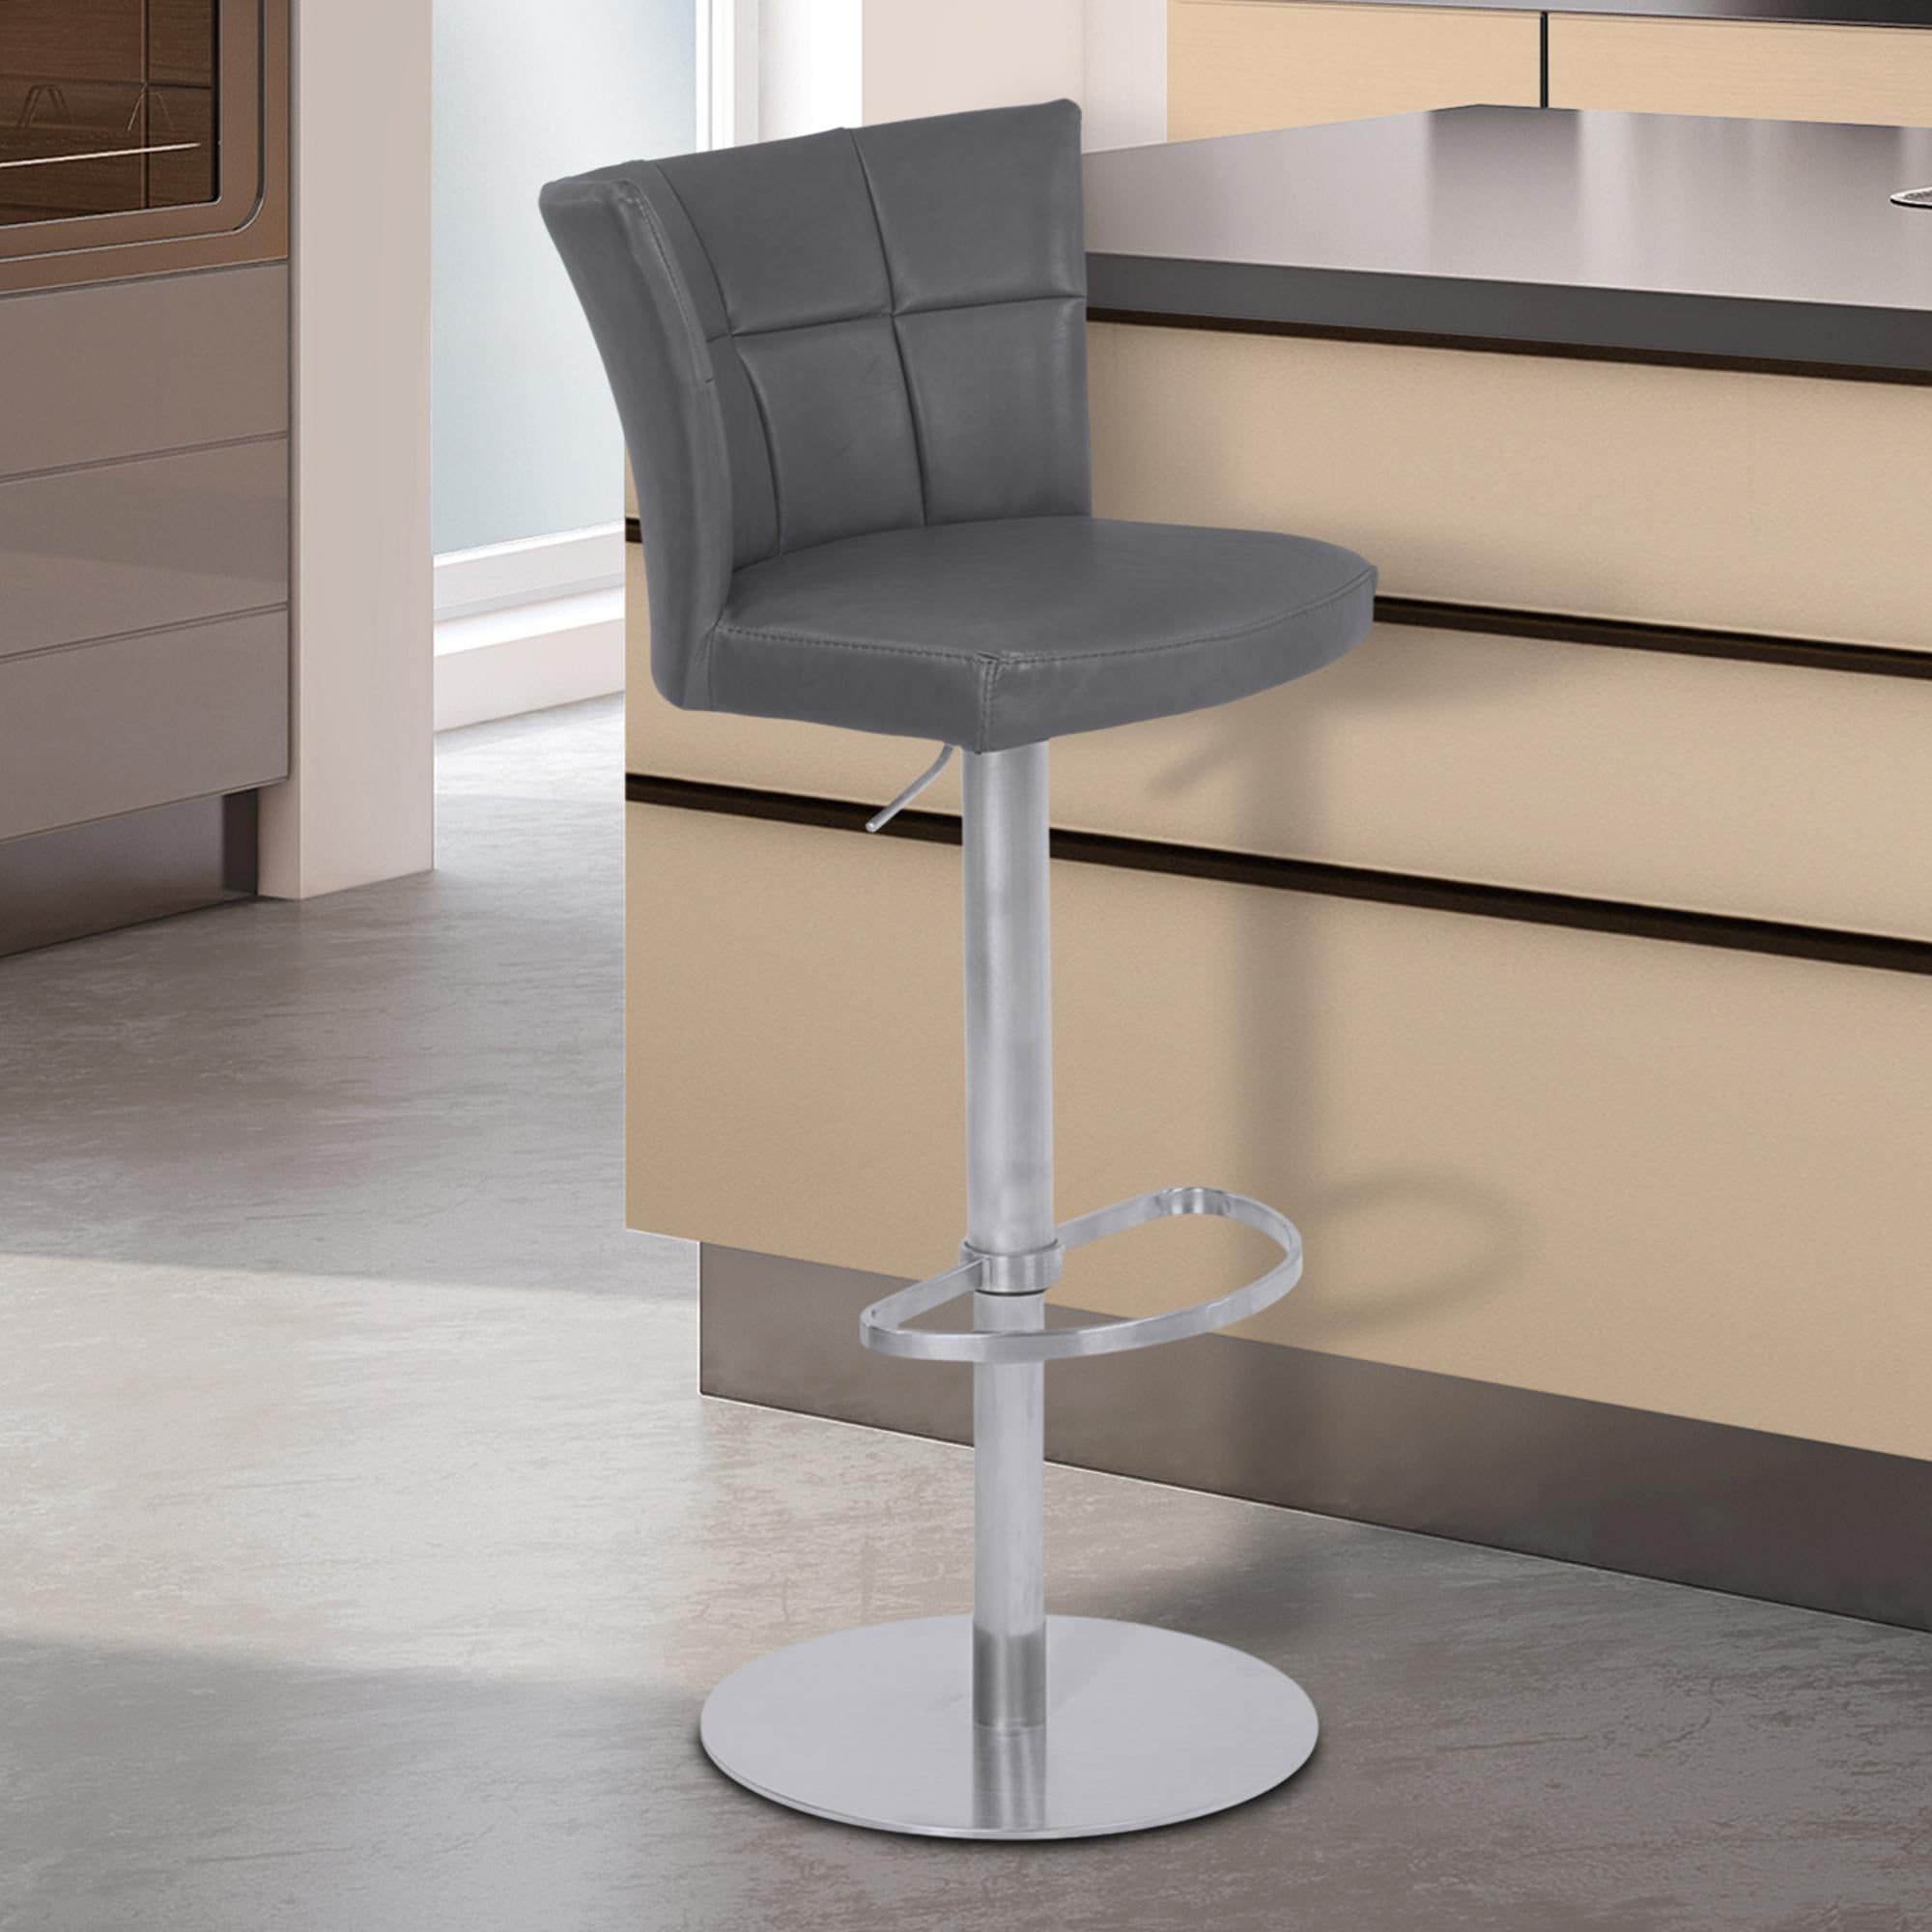 Armen Living Encore Adjustable Metal Barstool in Vintage Gray Faux Leather with Brushed Stainless Steel Finish